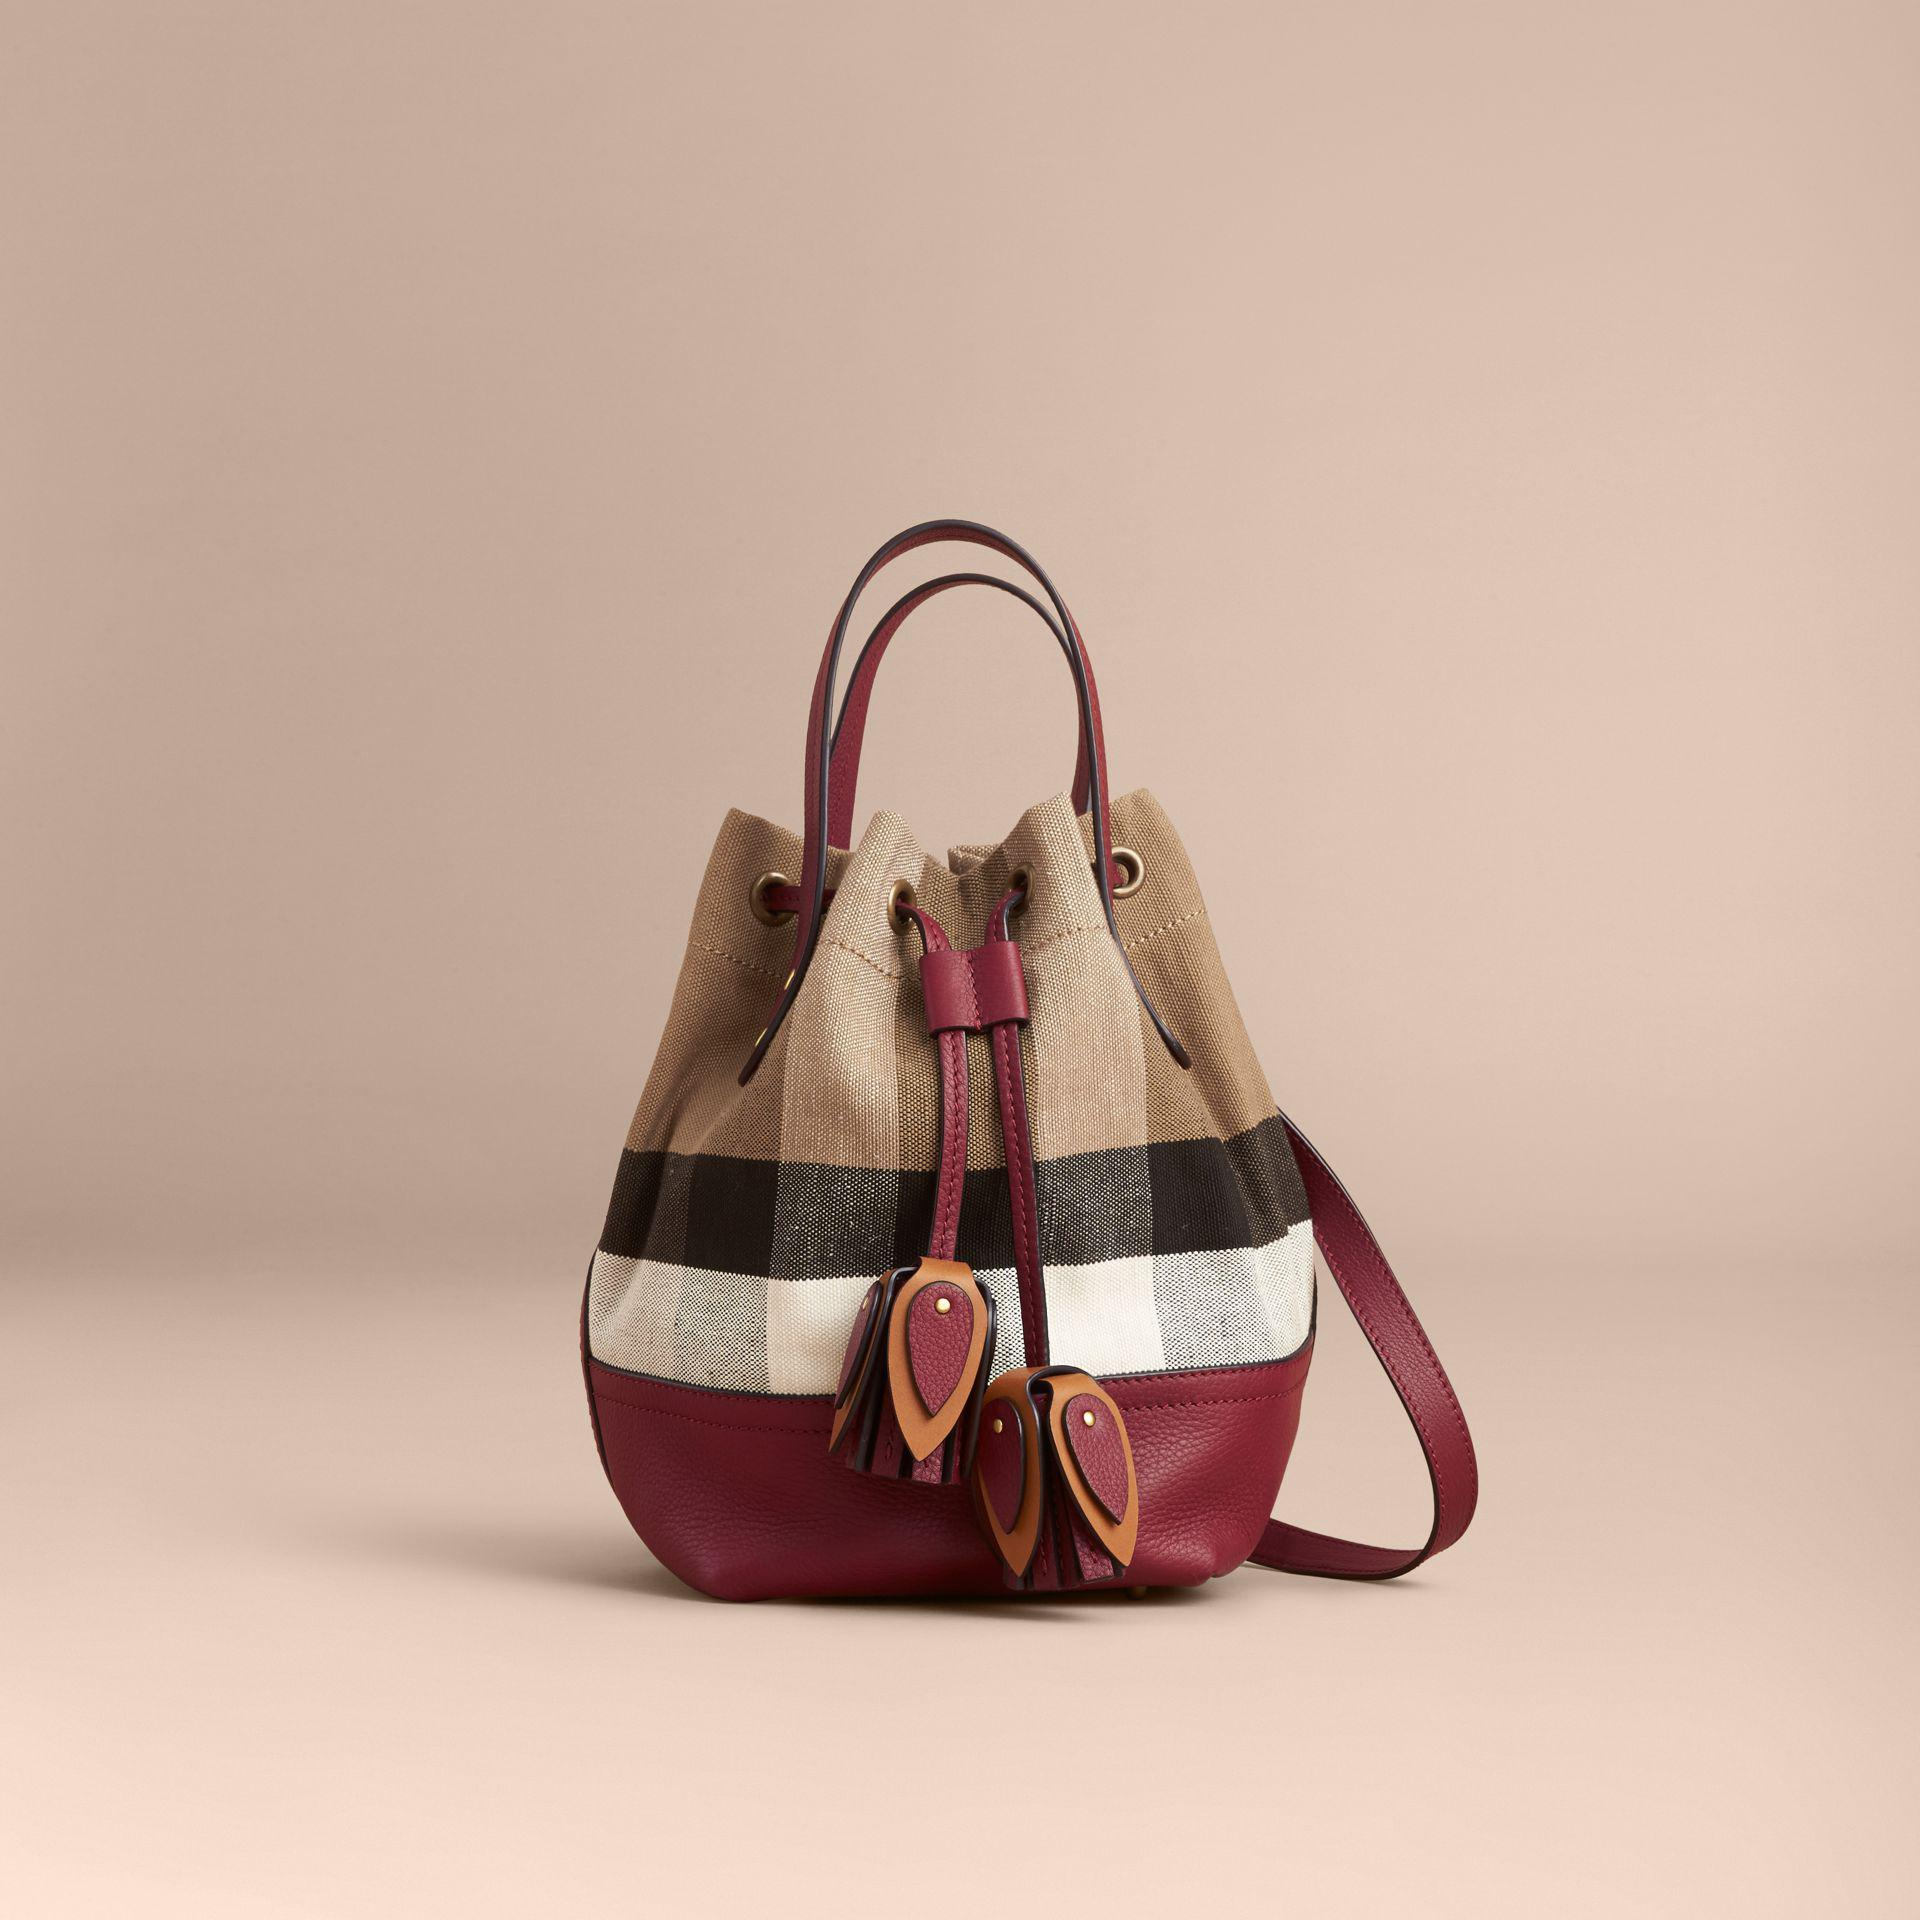 83083d2e63b7 Lyst - Burberry Small Canvas Check And Leather Bucket Bag